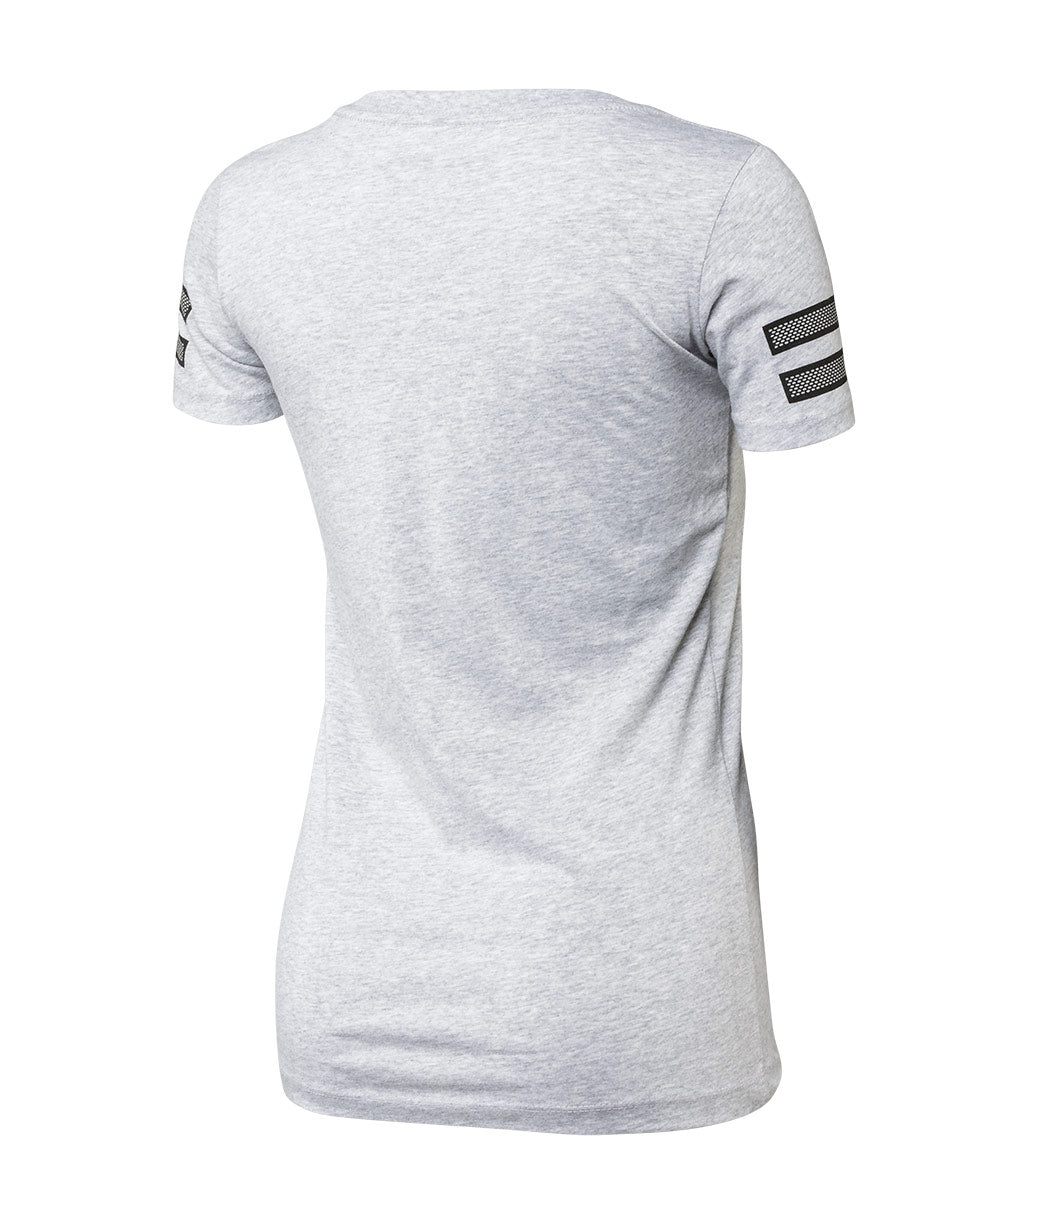 WMNS Athletic Tee - Heather Gray